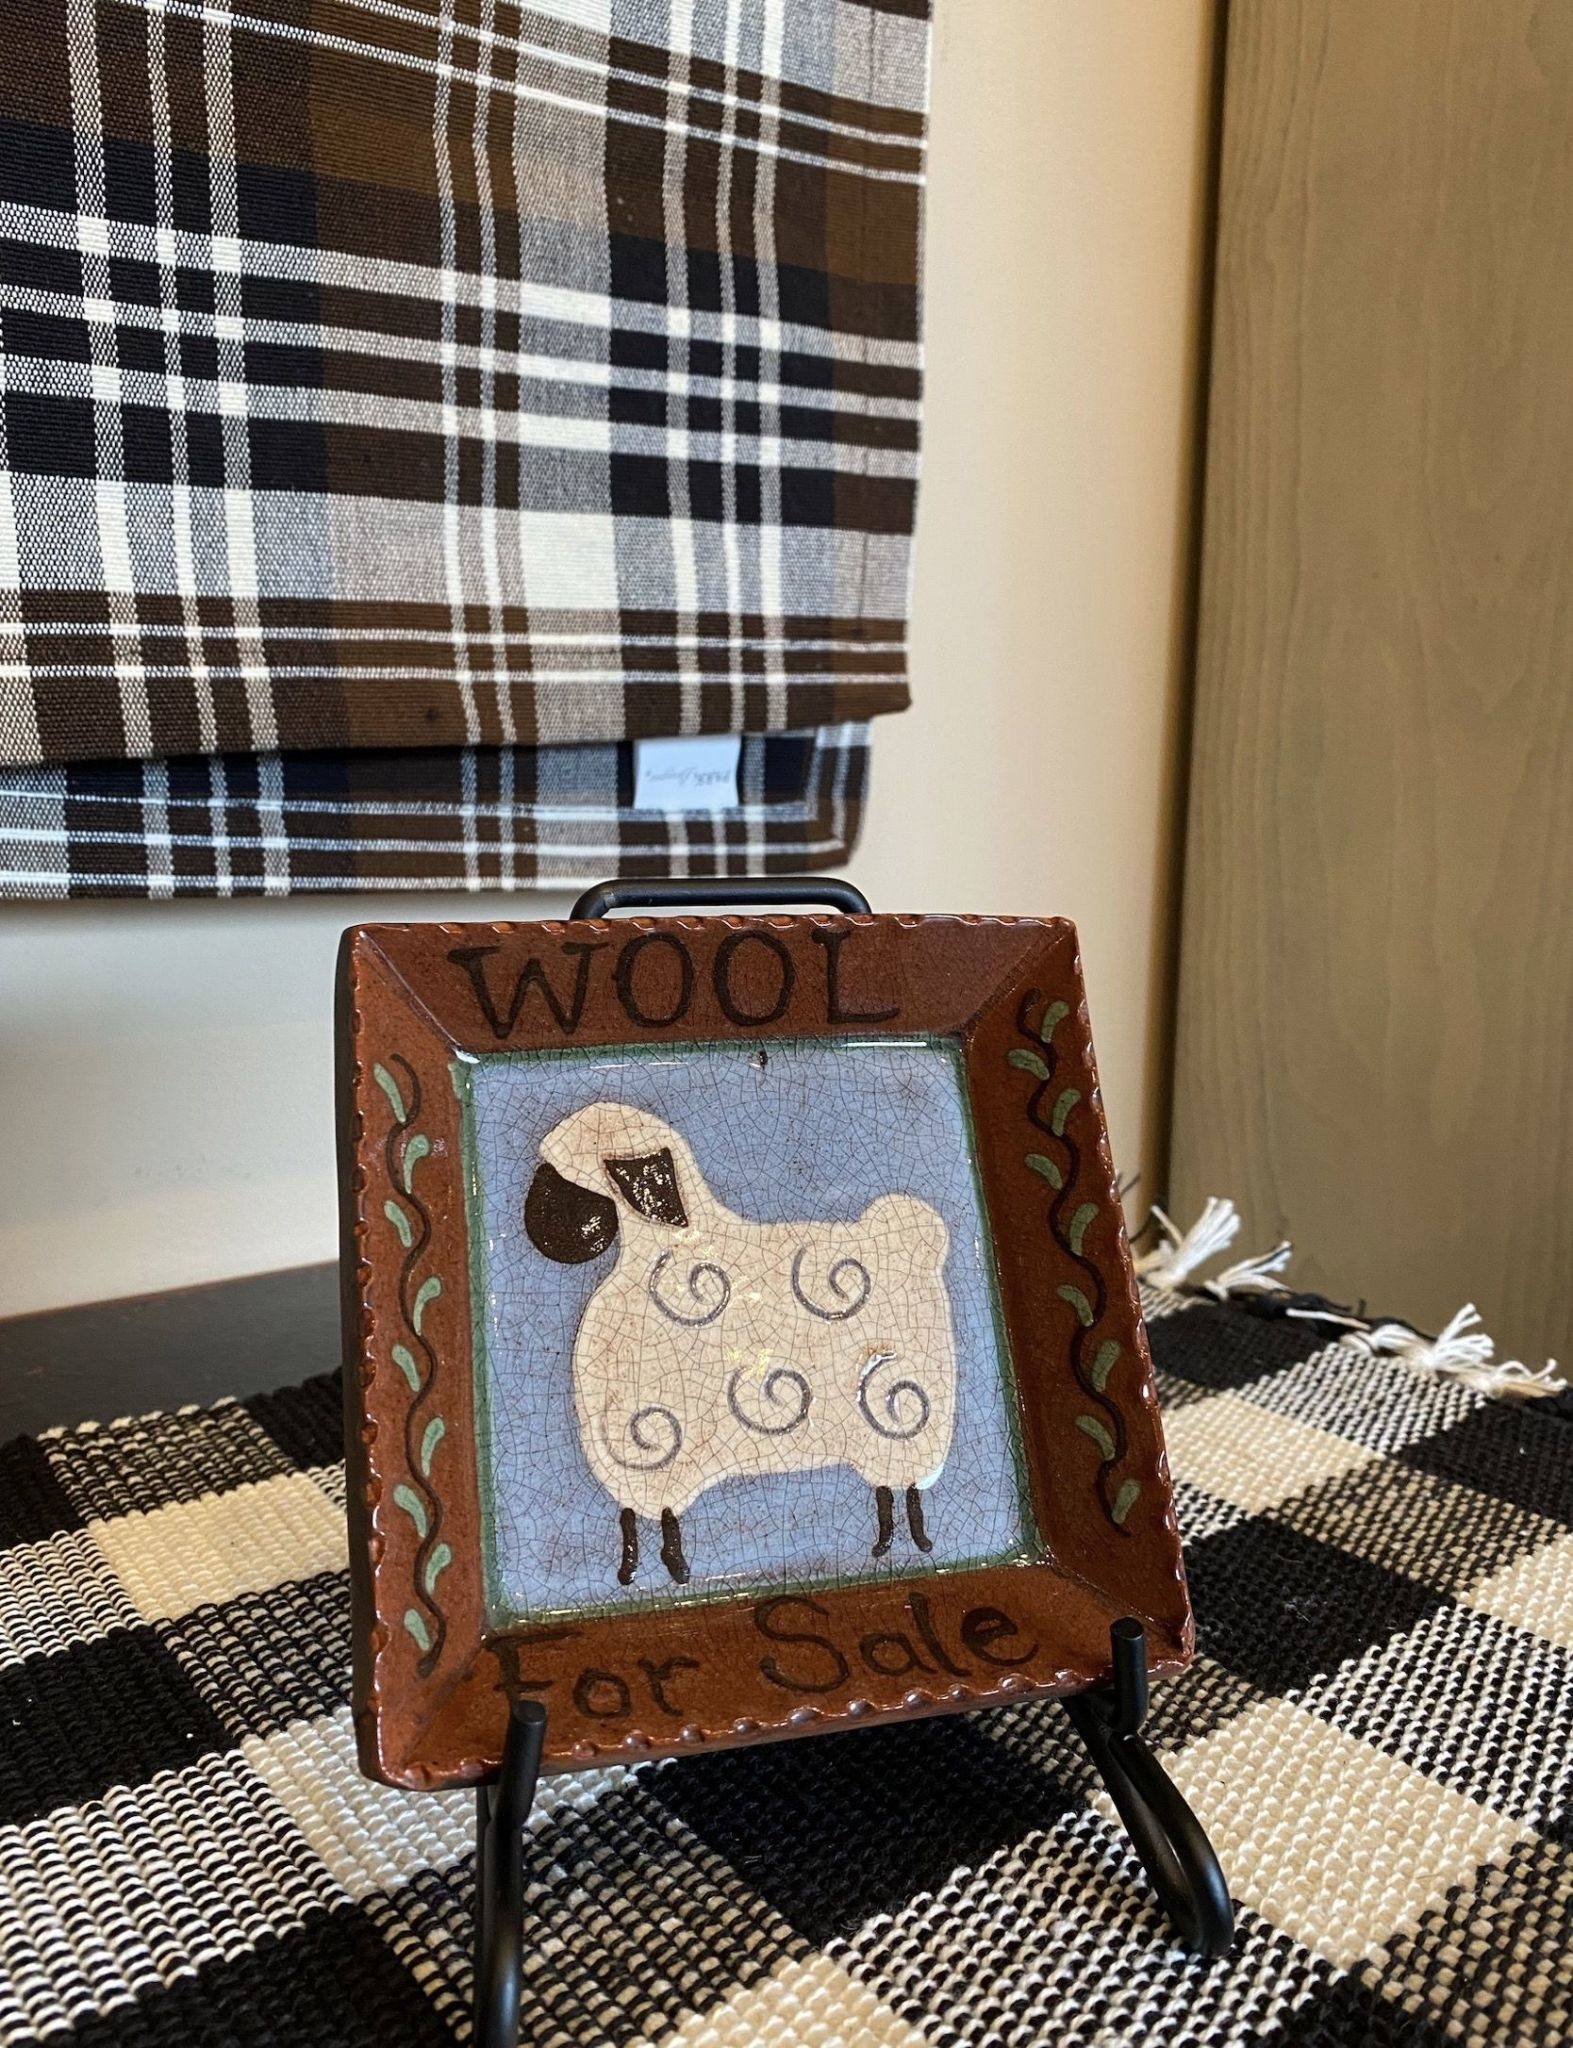 Smith Redware Wool For Sale Square Plate